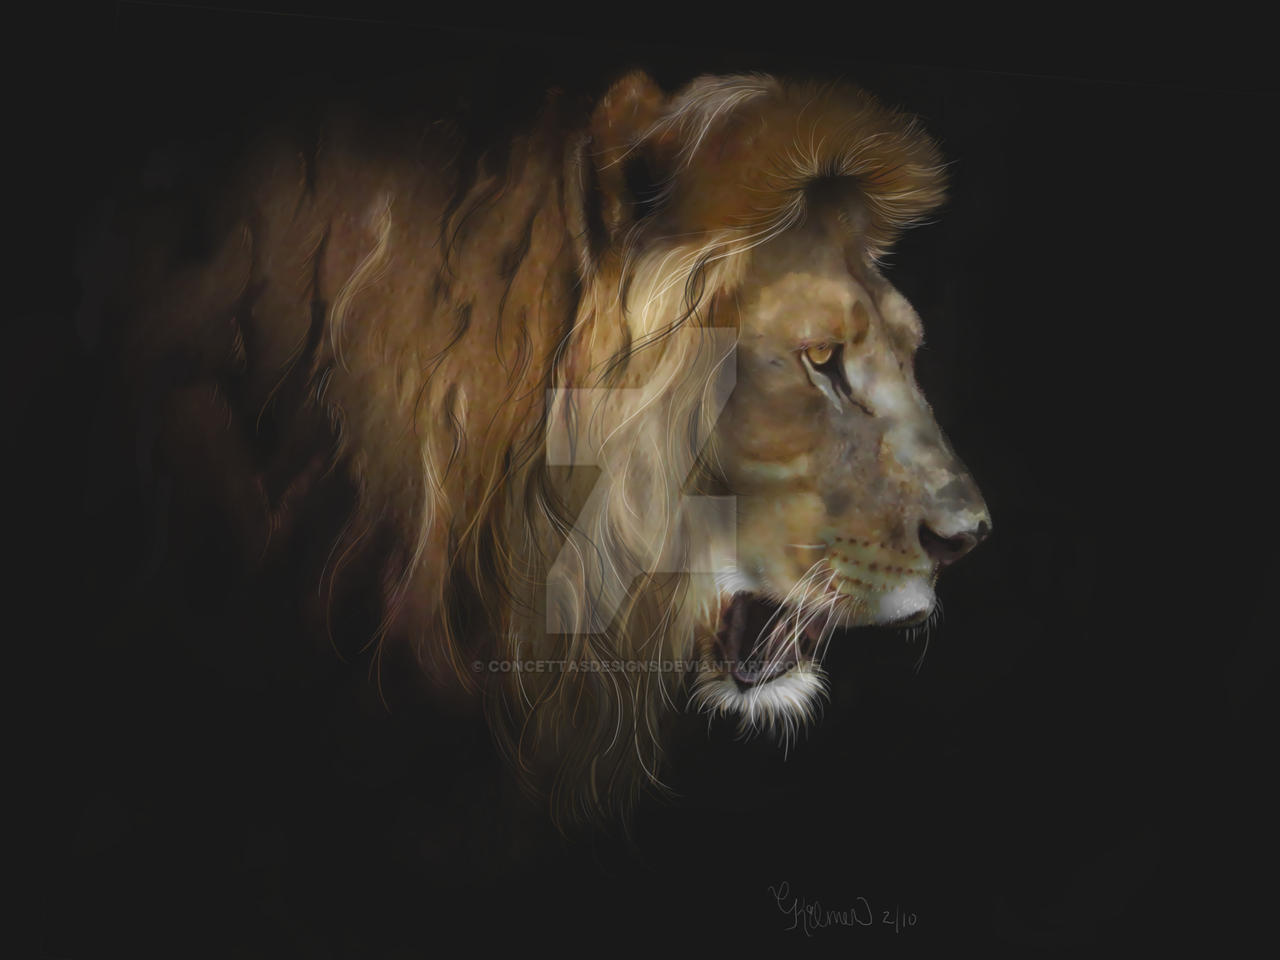 King of the Jungle by concettasdesigns